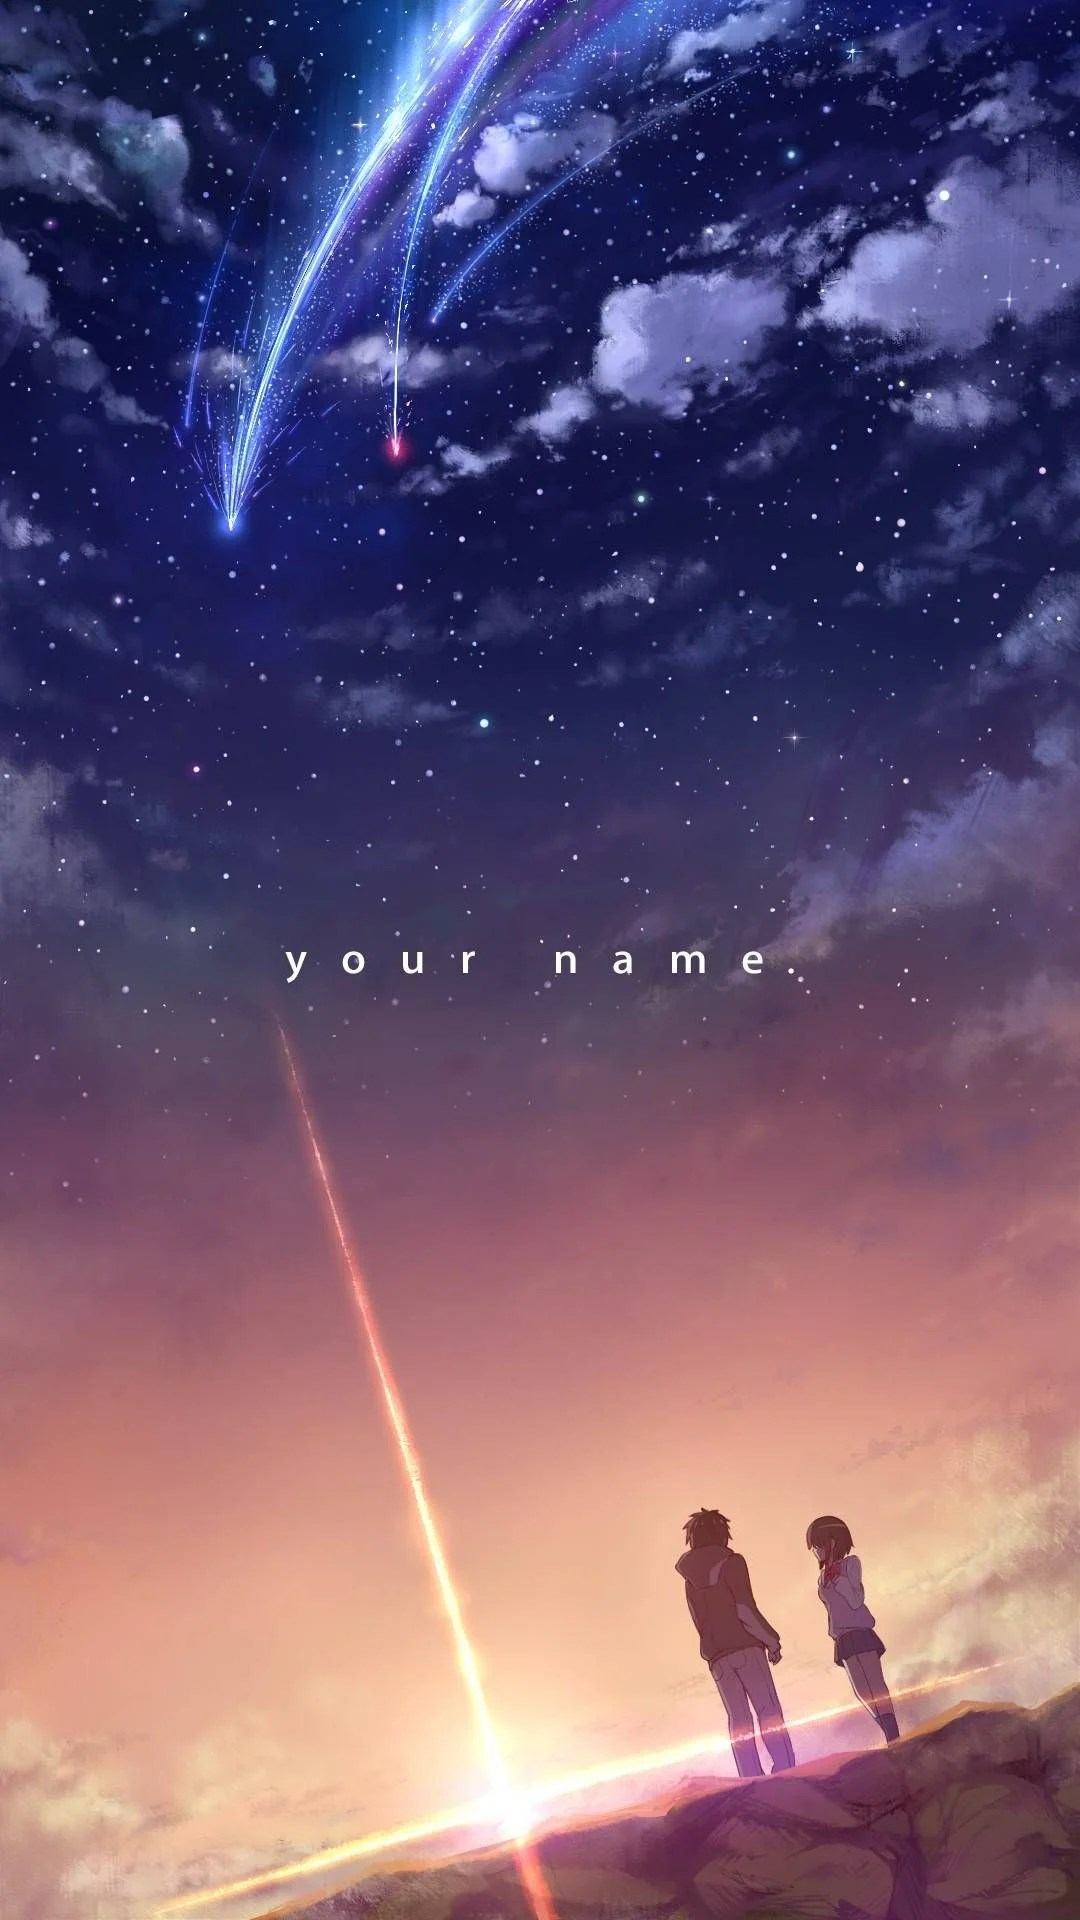 Your Name Gif Wallpaper Phone : wallpaper, phone, Anime, Wallpapers, Backgrounds, WallpaperAccess